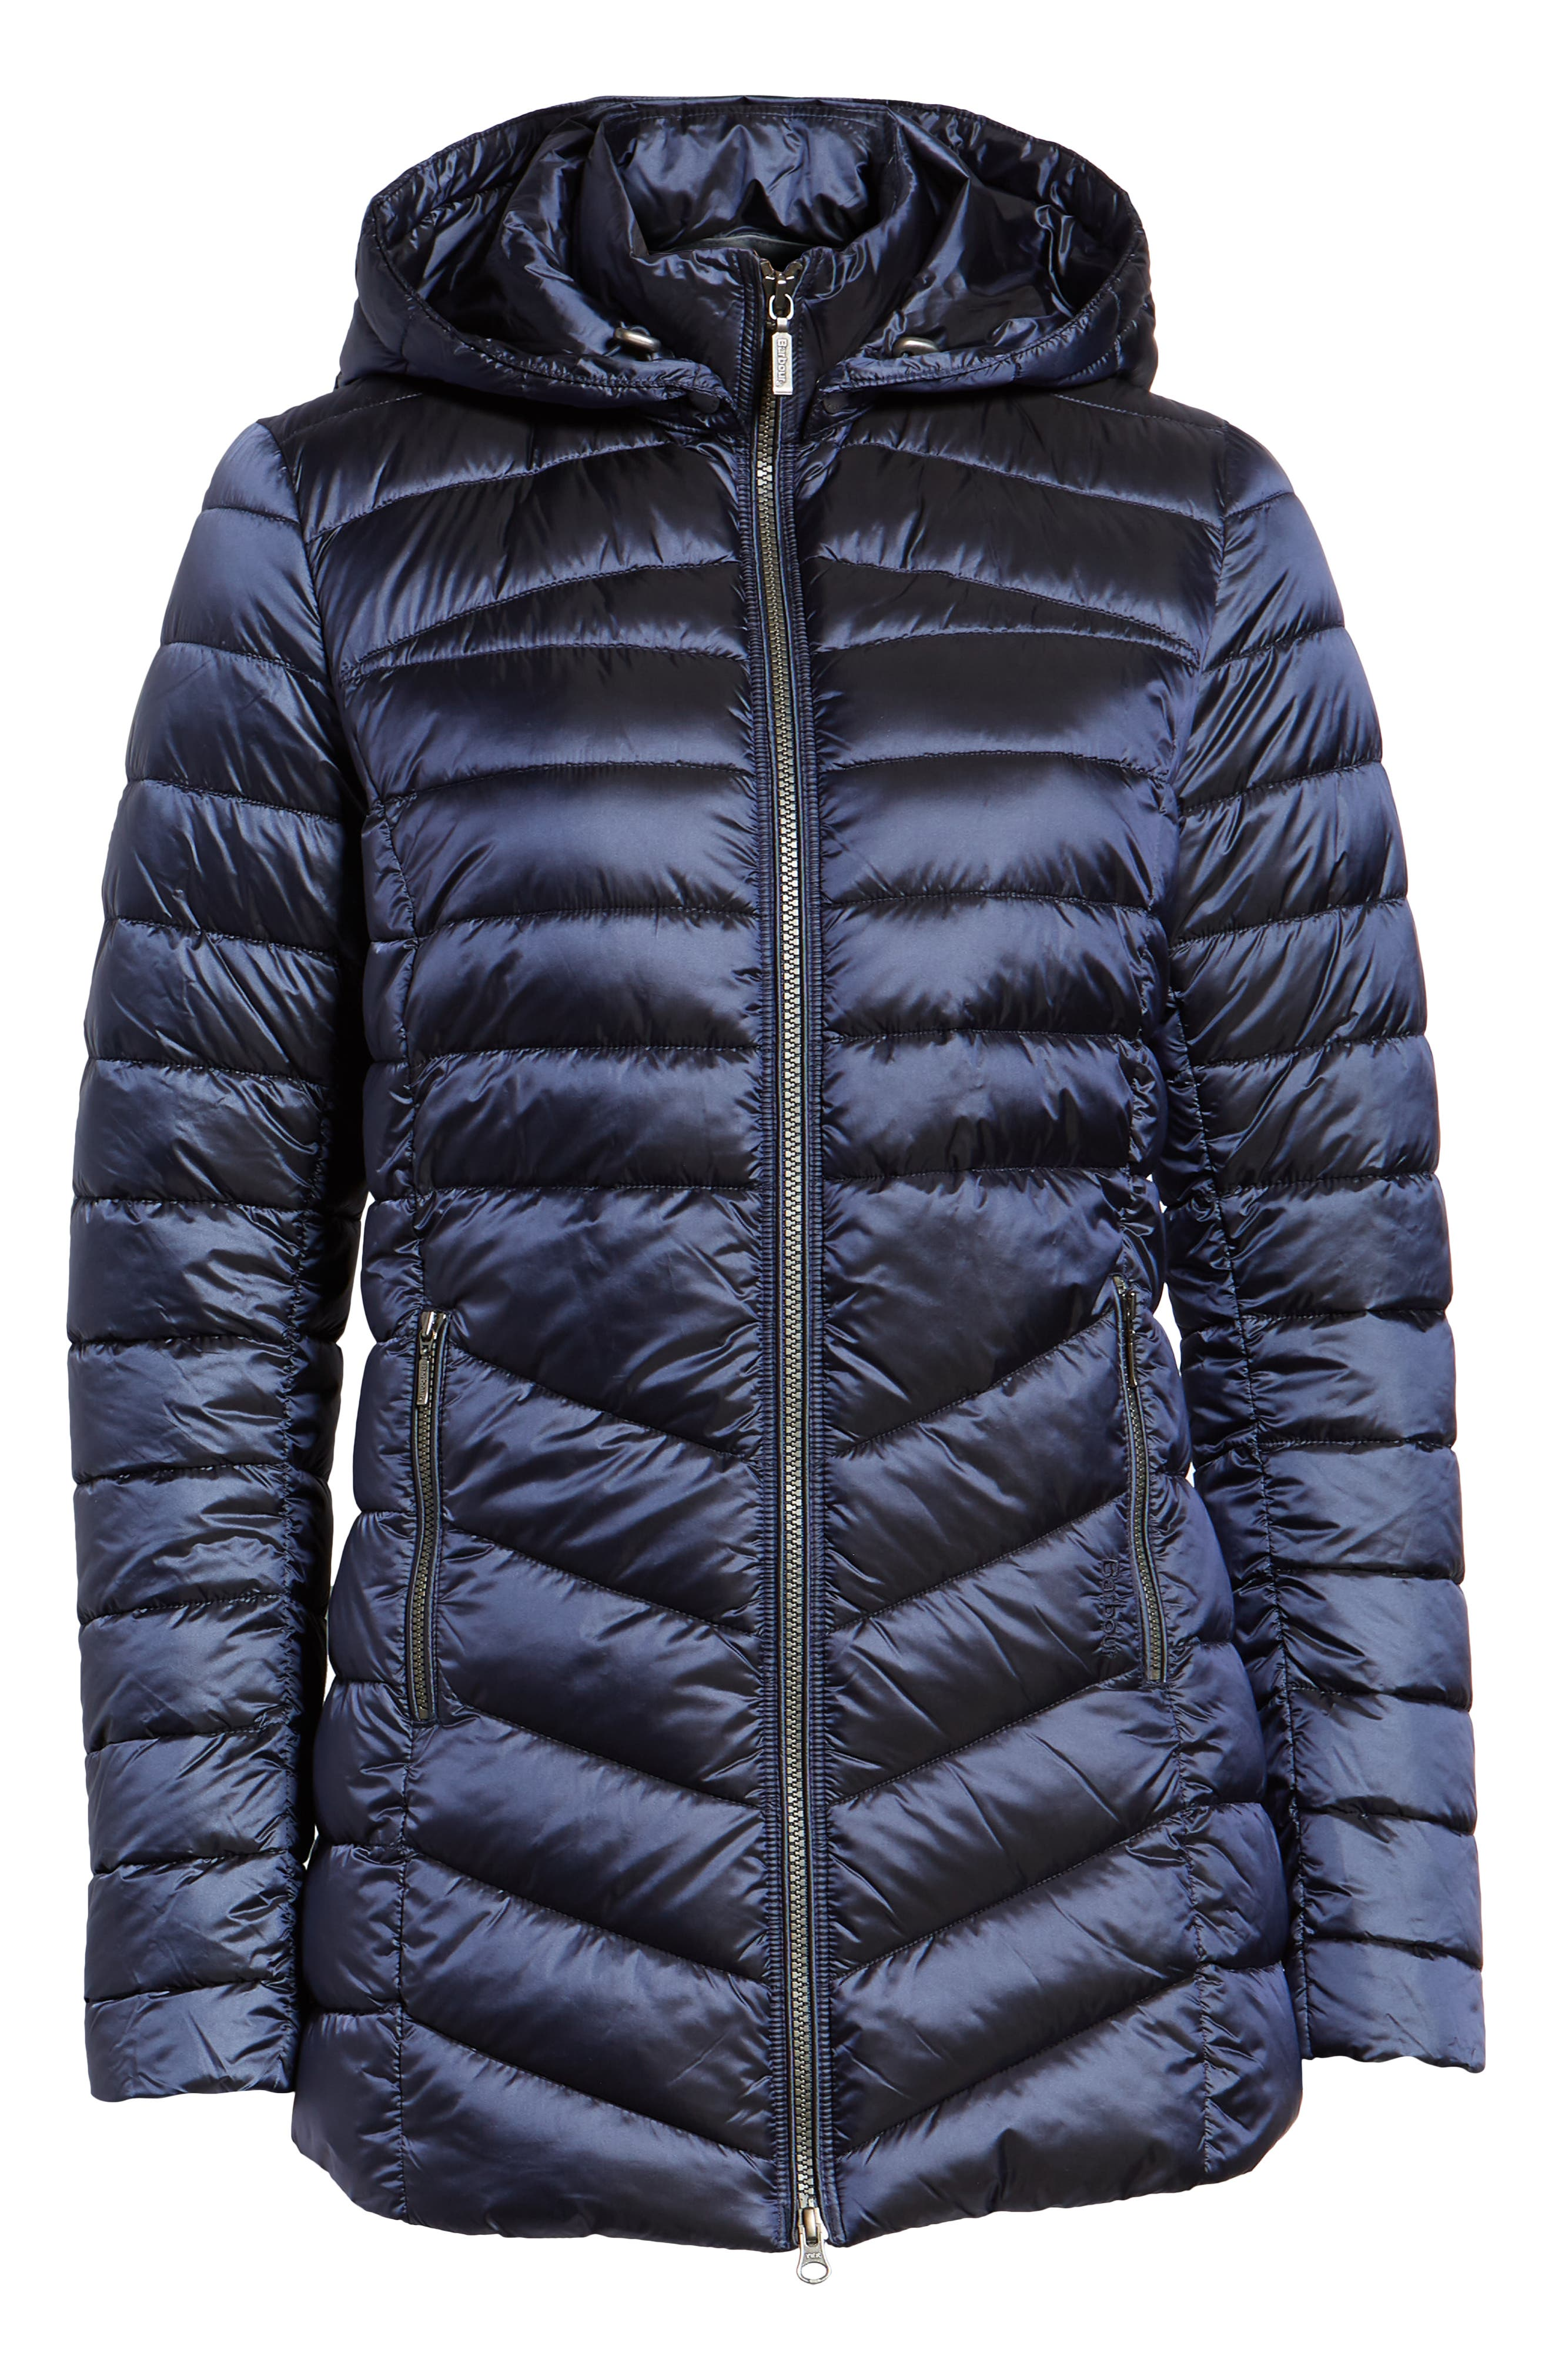 Ailith Quilted Jacket,                             Alternate thumbnail 6, color,                             ROYAL NAVY